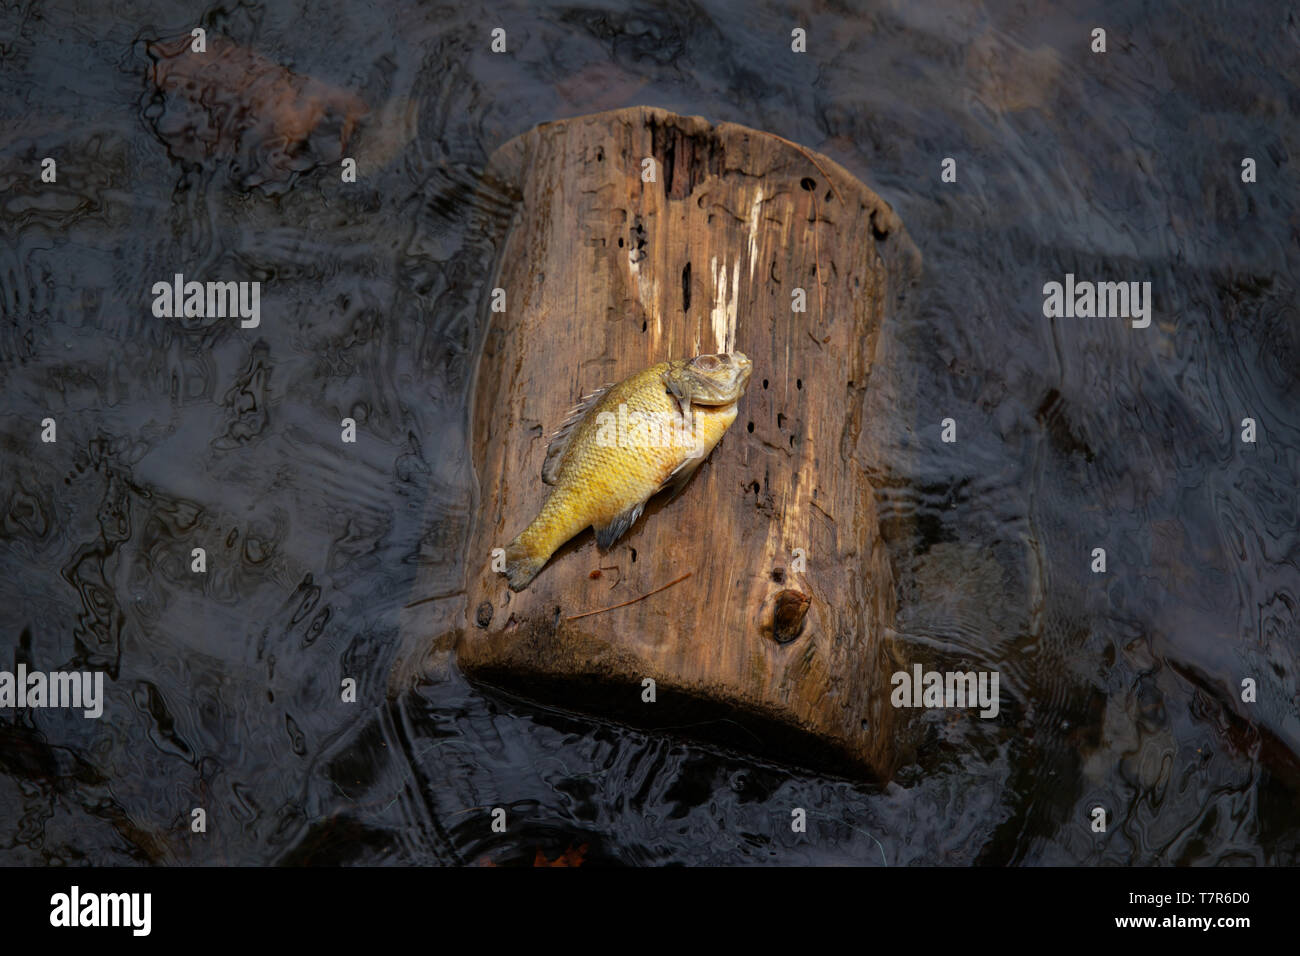 An unusual event of a dead fish on a floating log in the middle of the water. - Stock Image